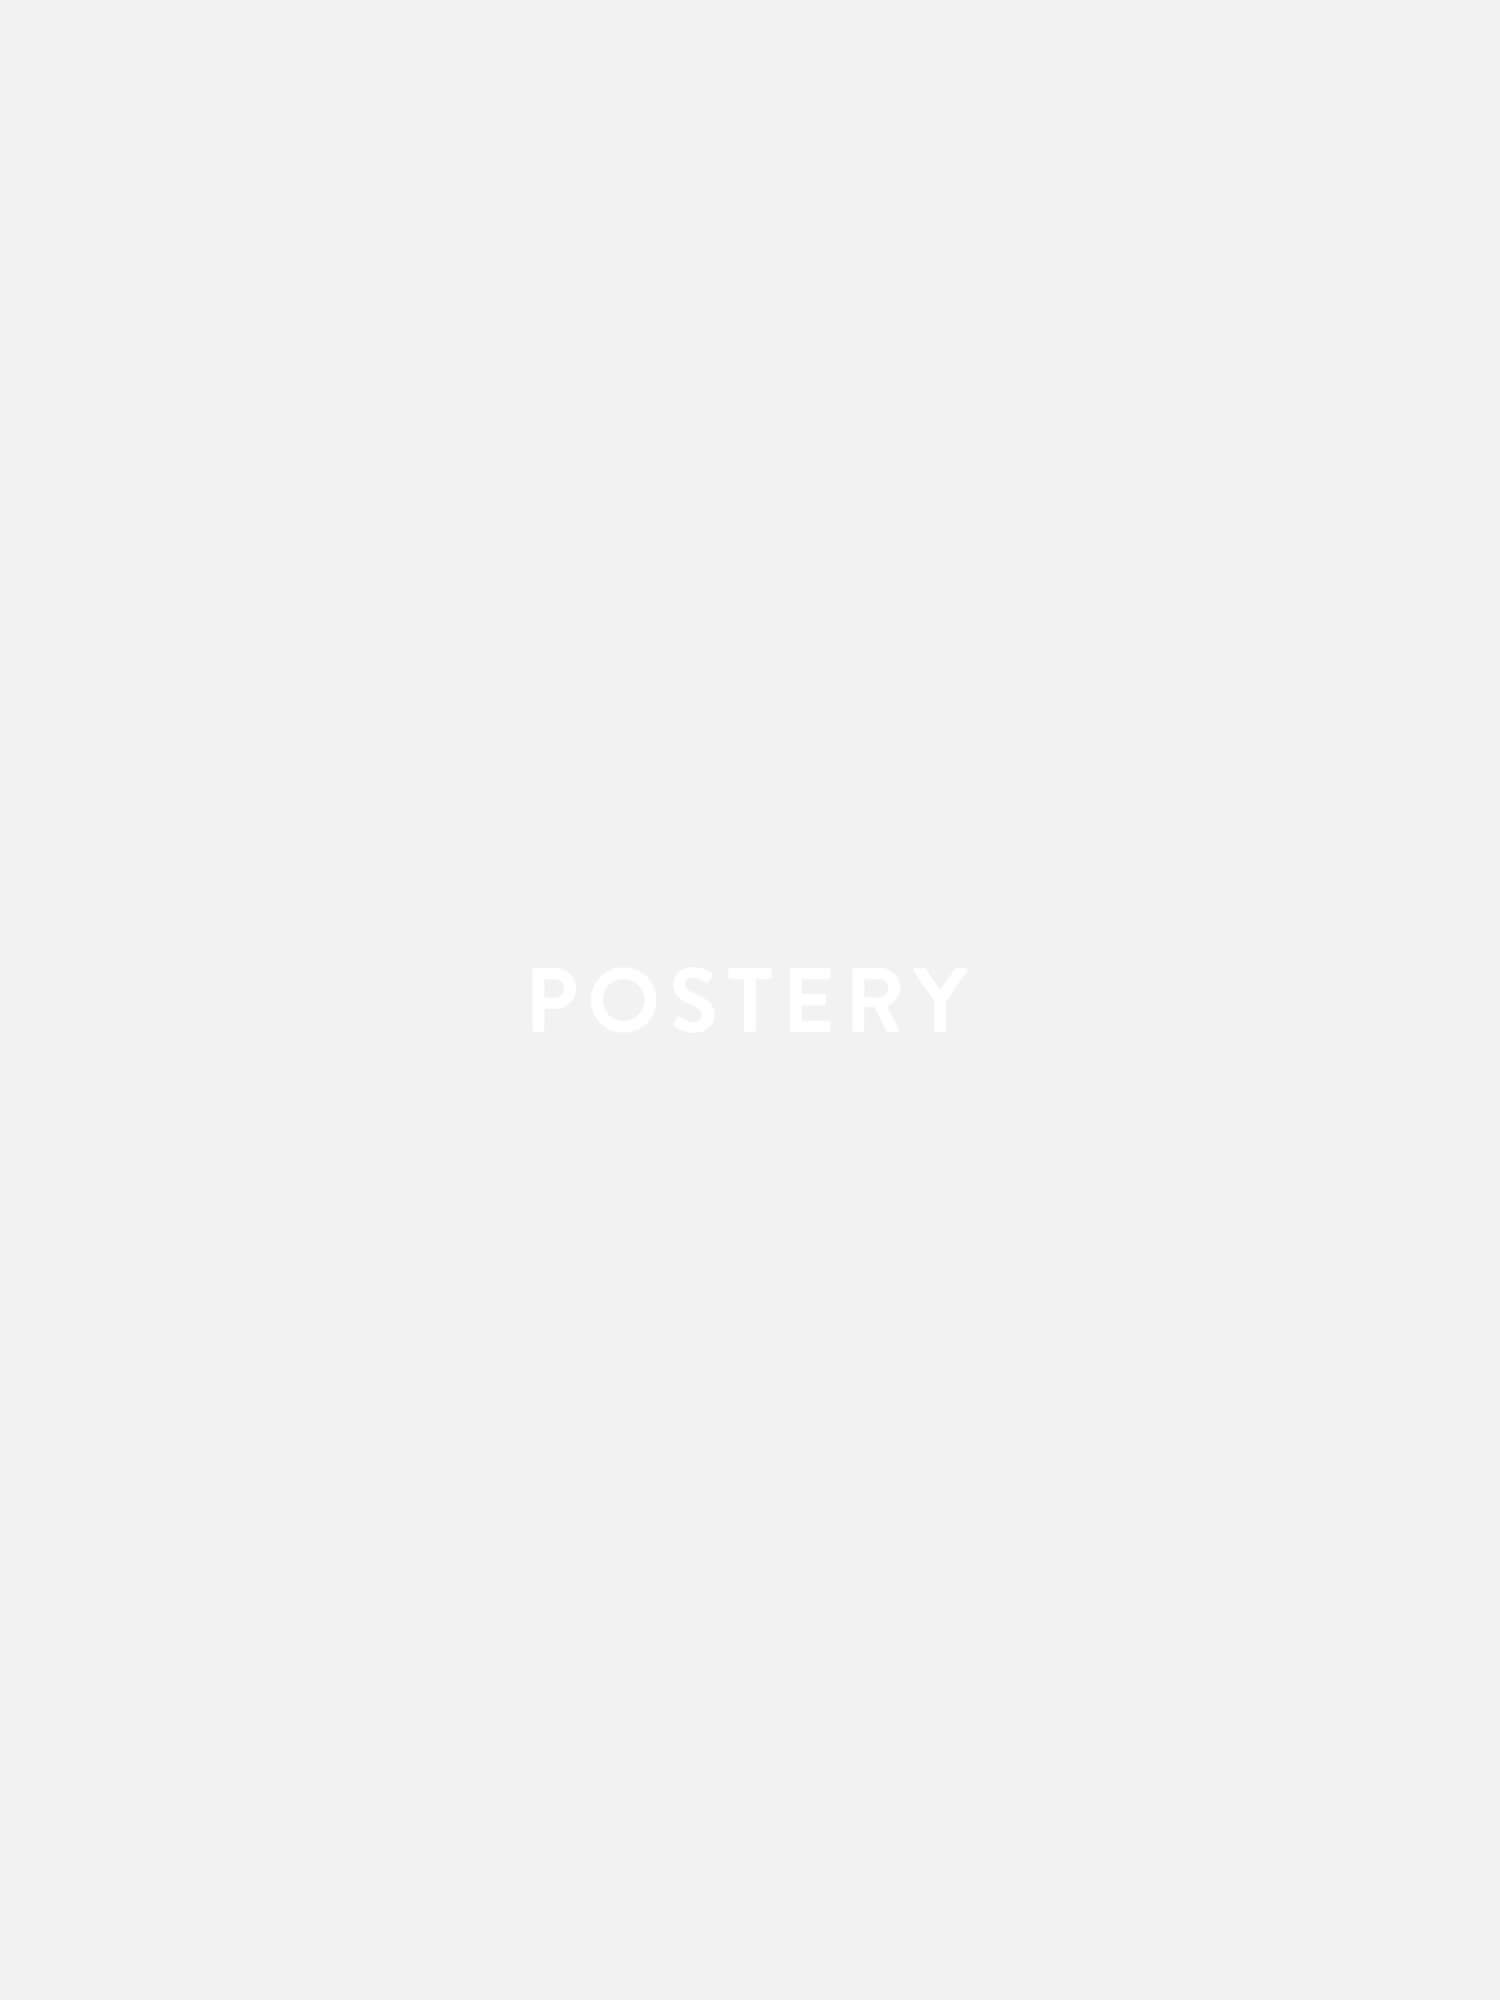 Abstraction no.3 Poster